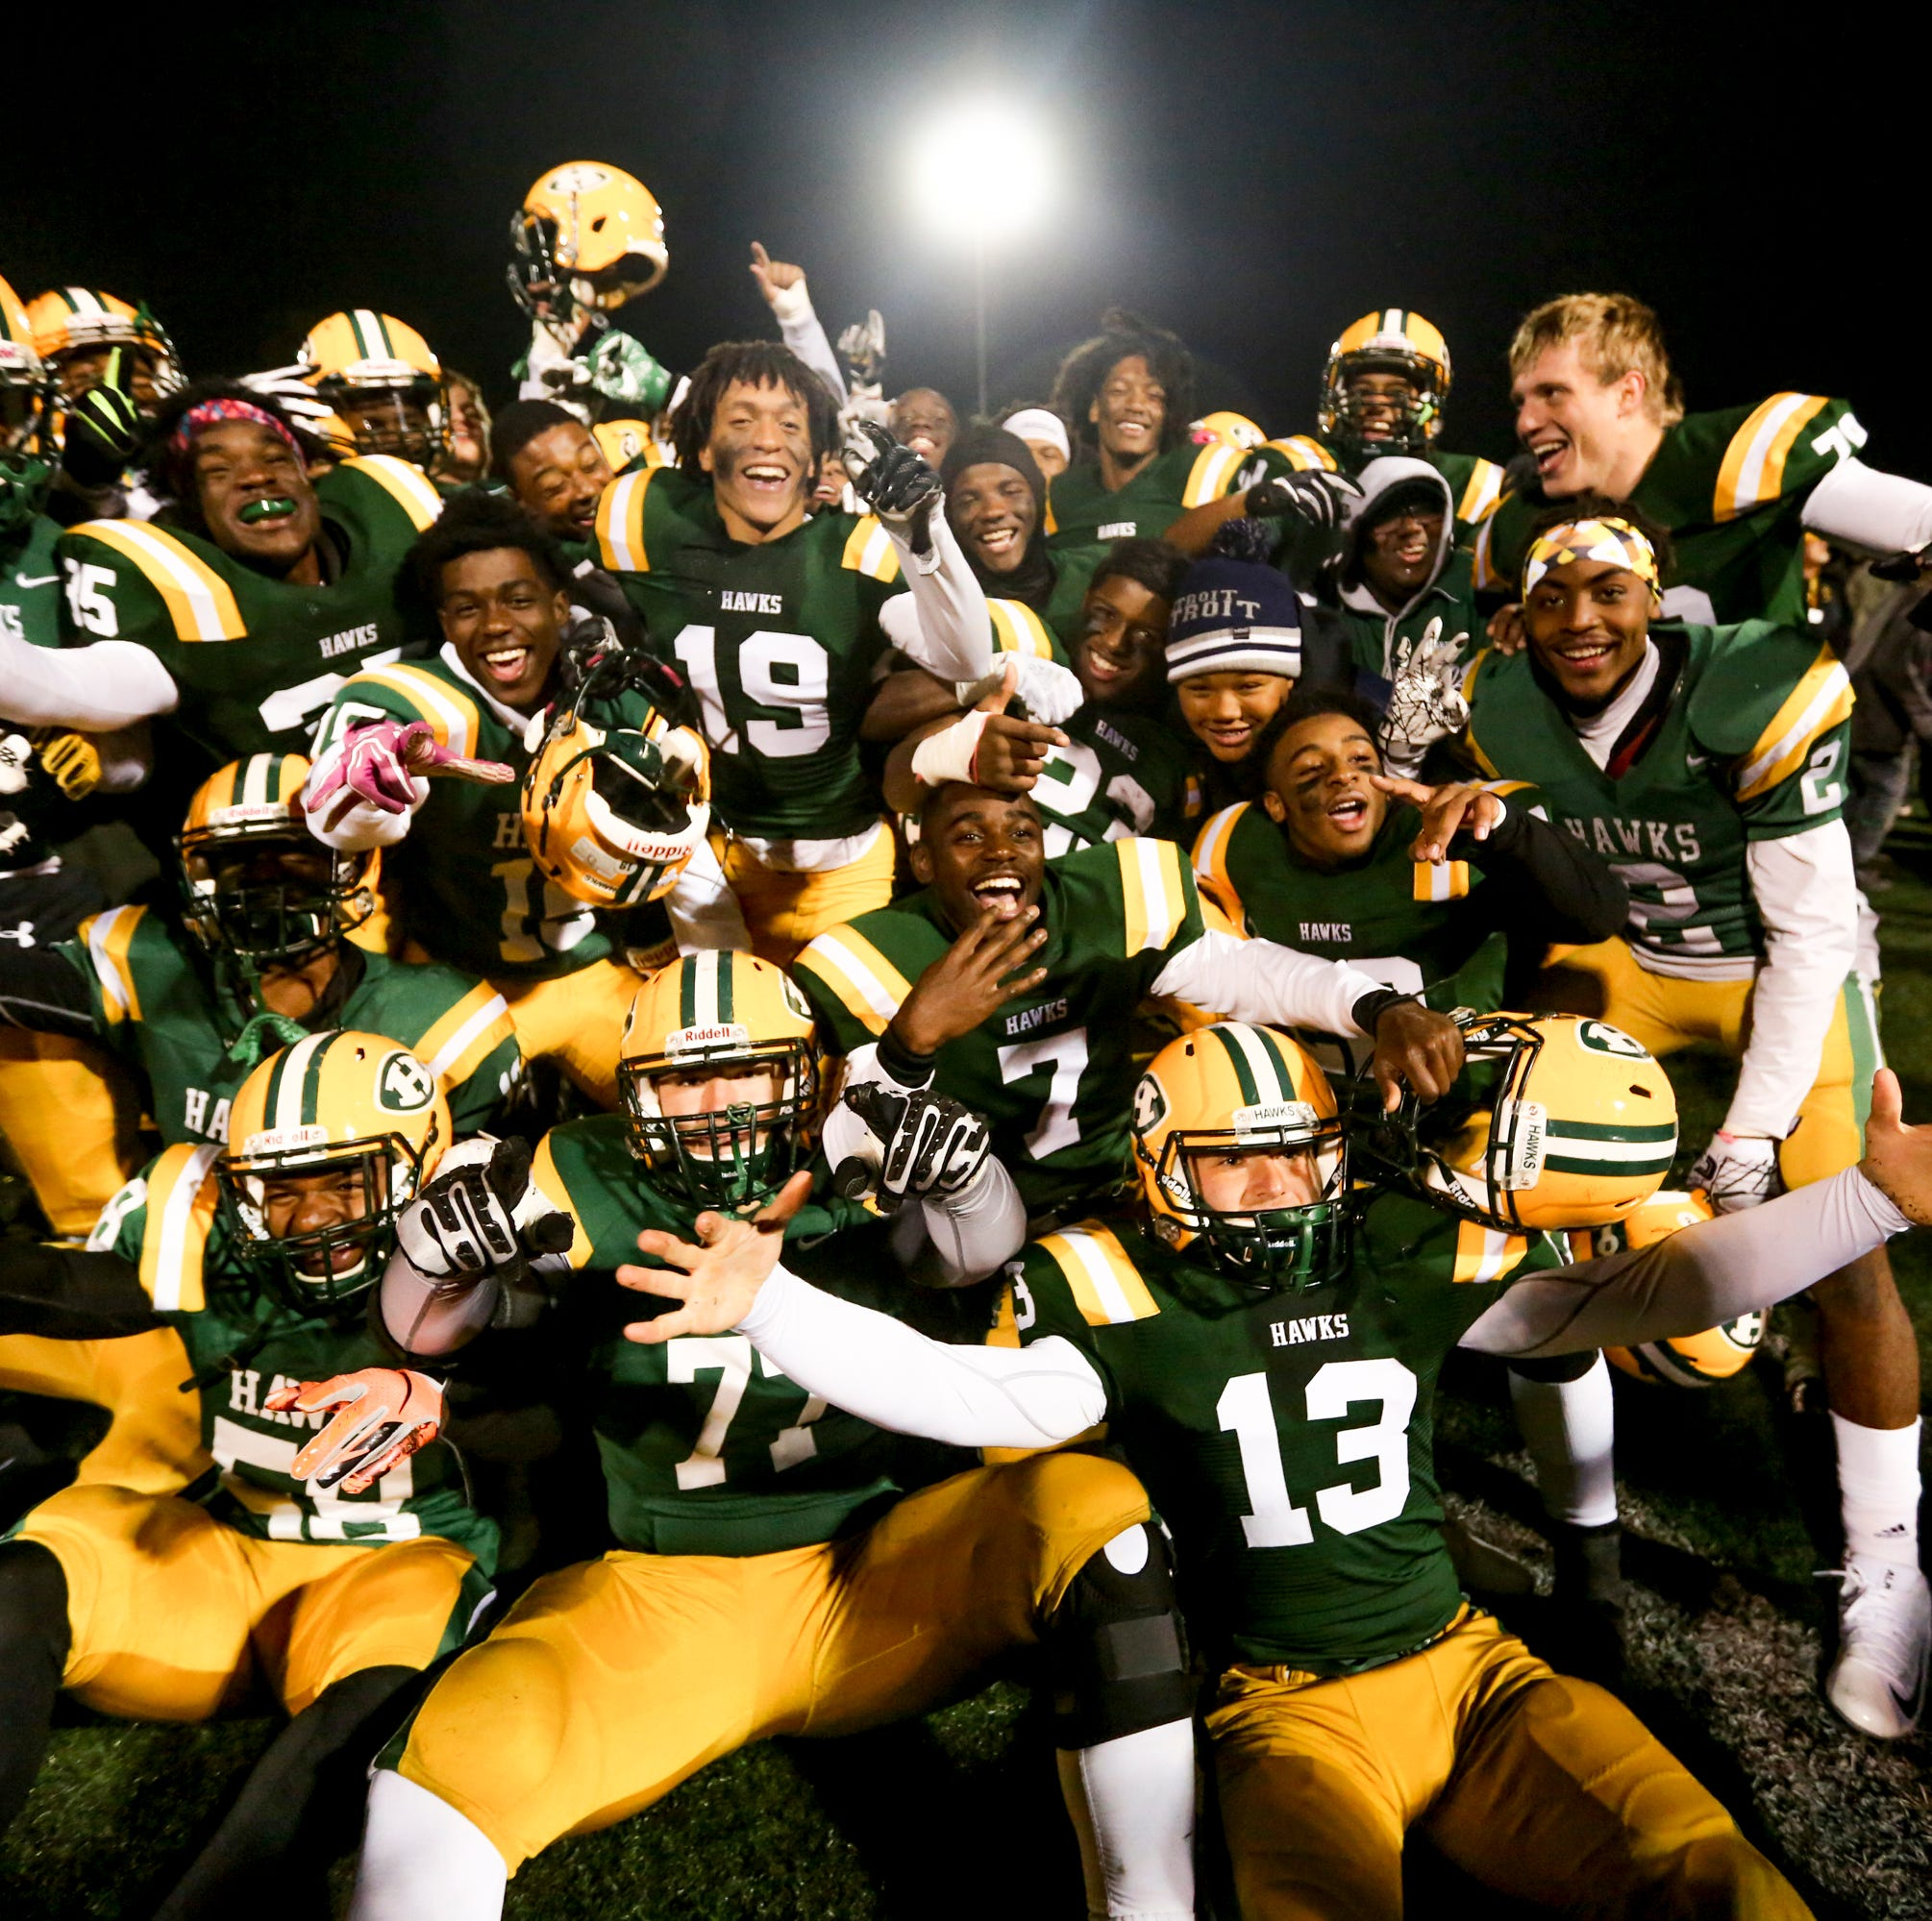 Harrison hammers Farmington, lives to play another game